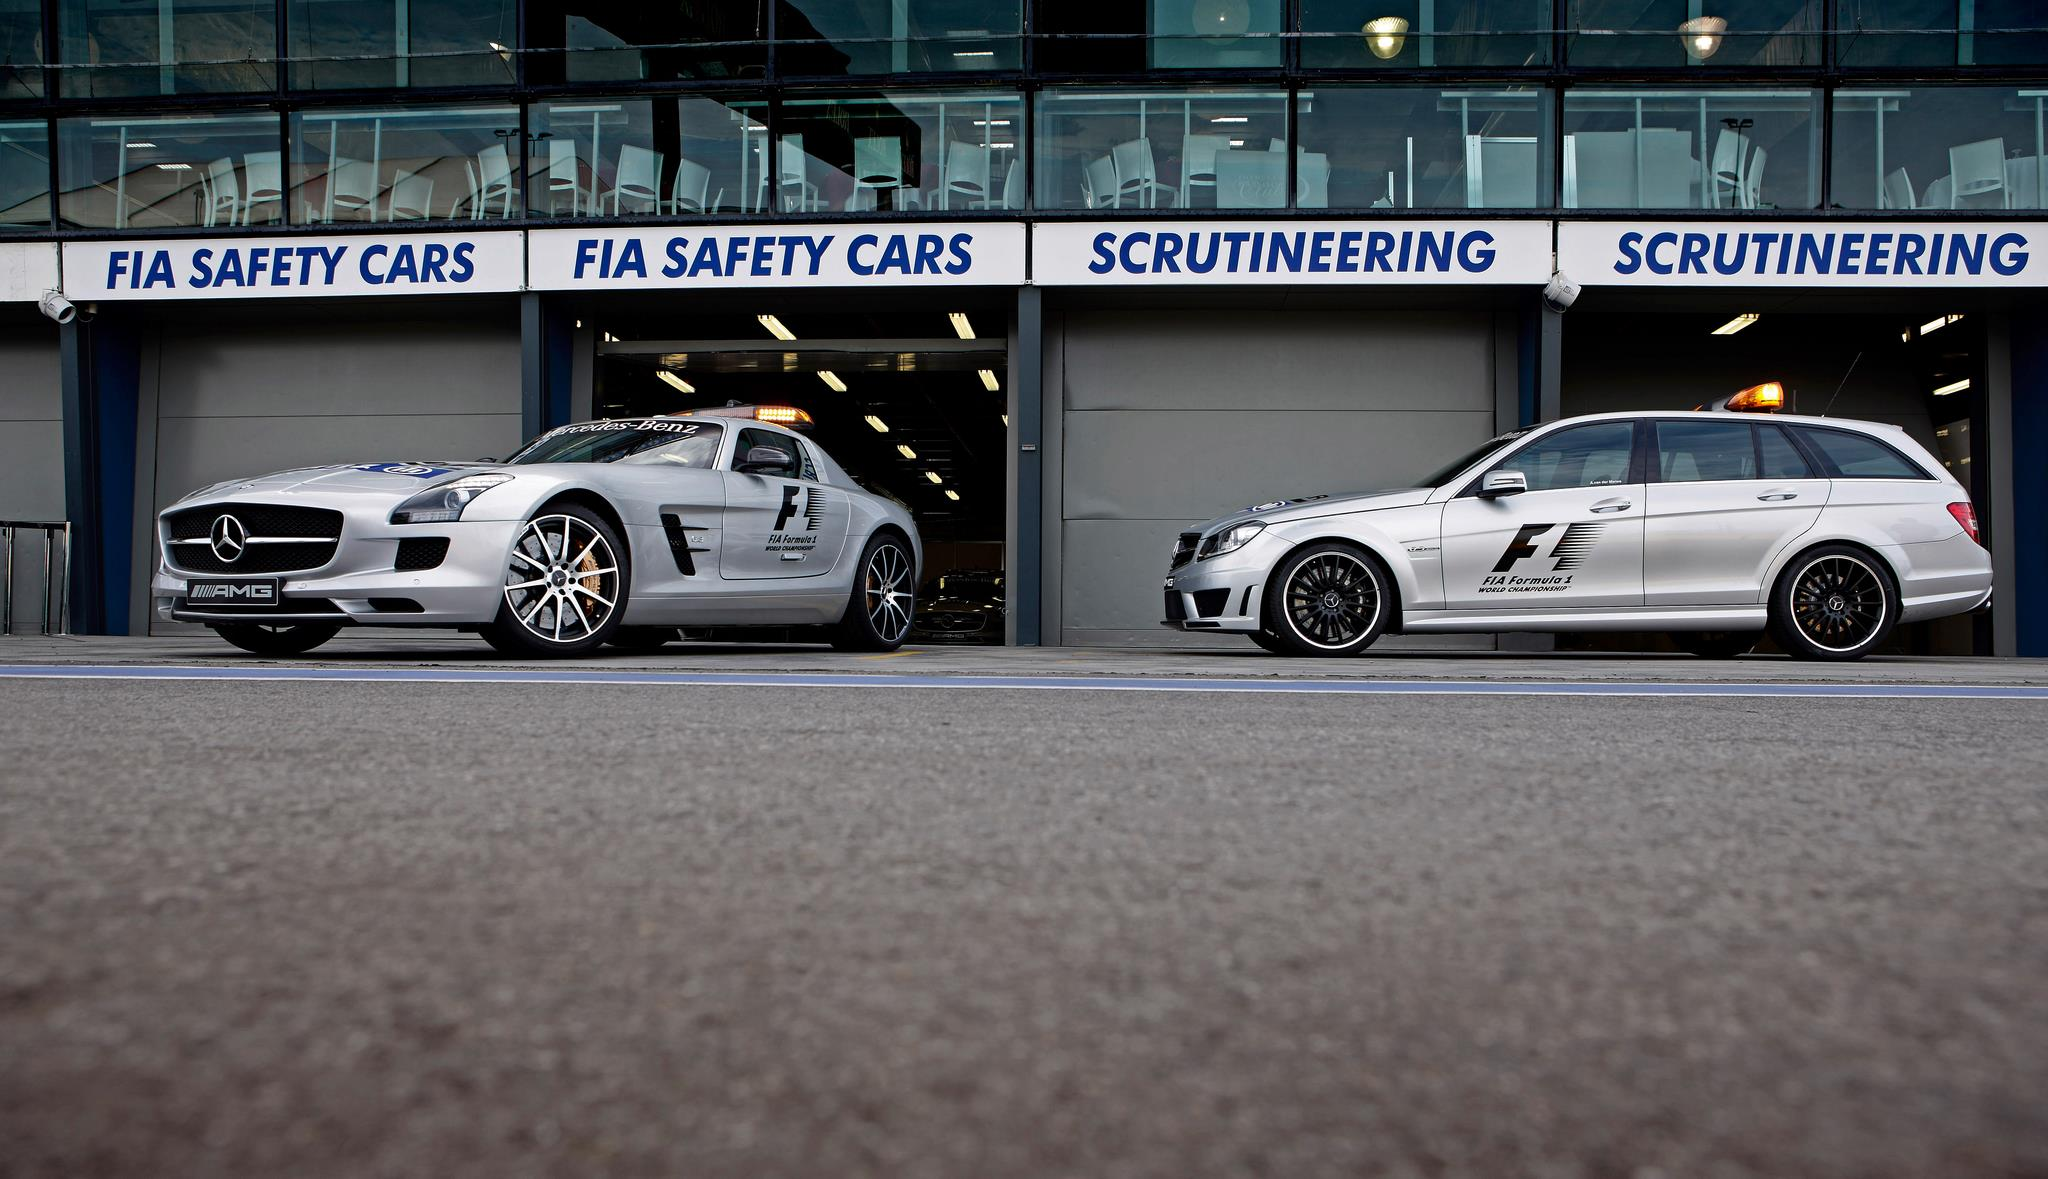 Official-Safety-Car-and-Official-Medical-Car-for-the-Formular-1-2013-season---SLS-AMG-GT-and-C-63-AM.jpg